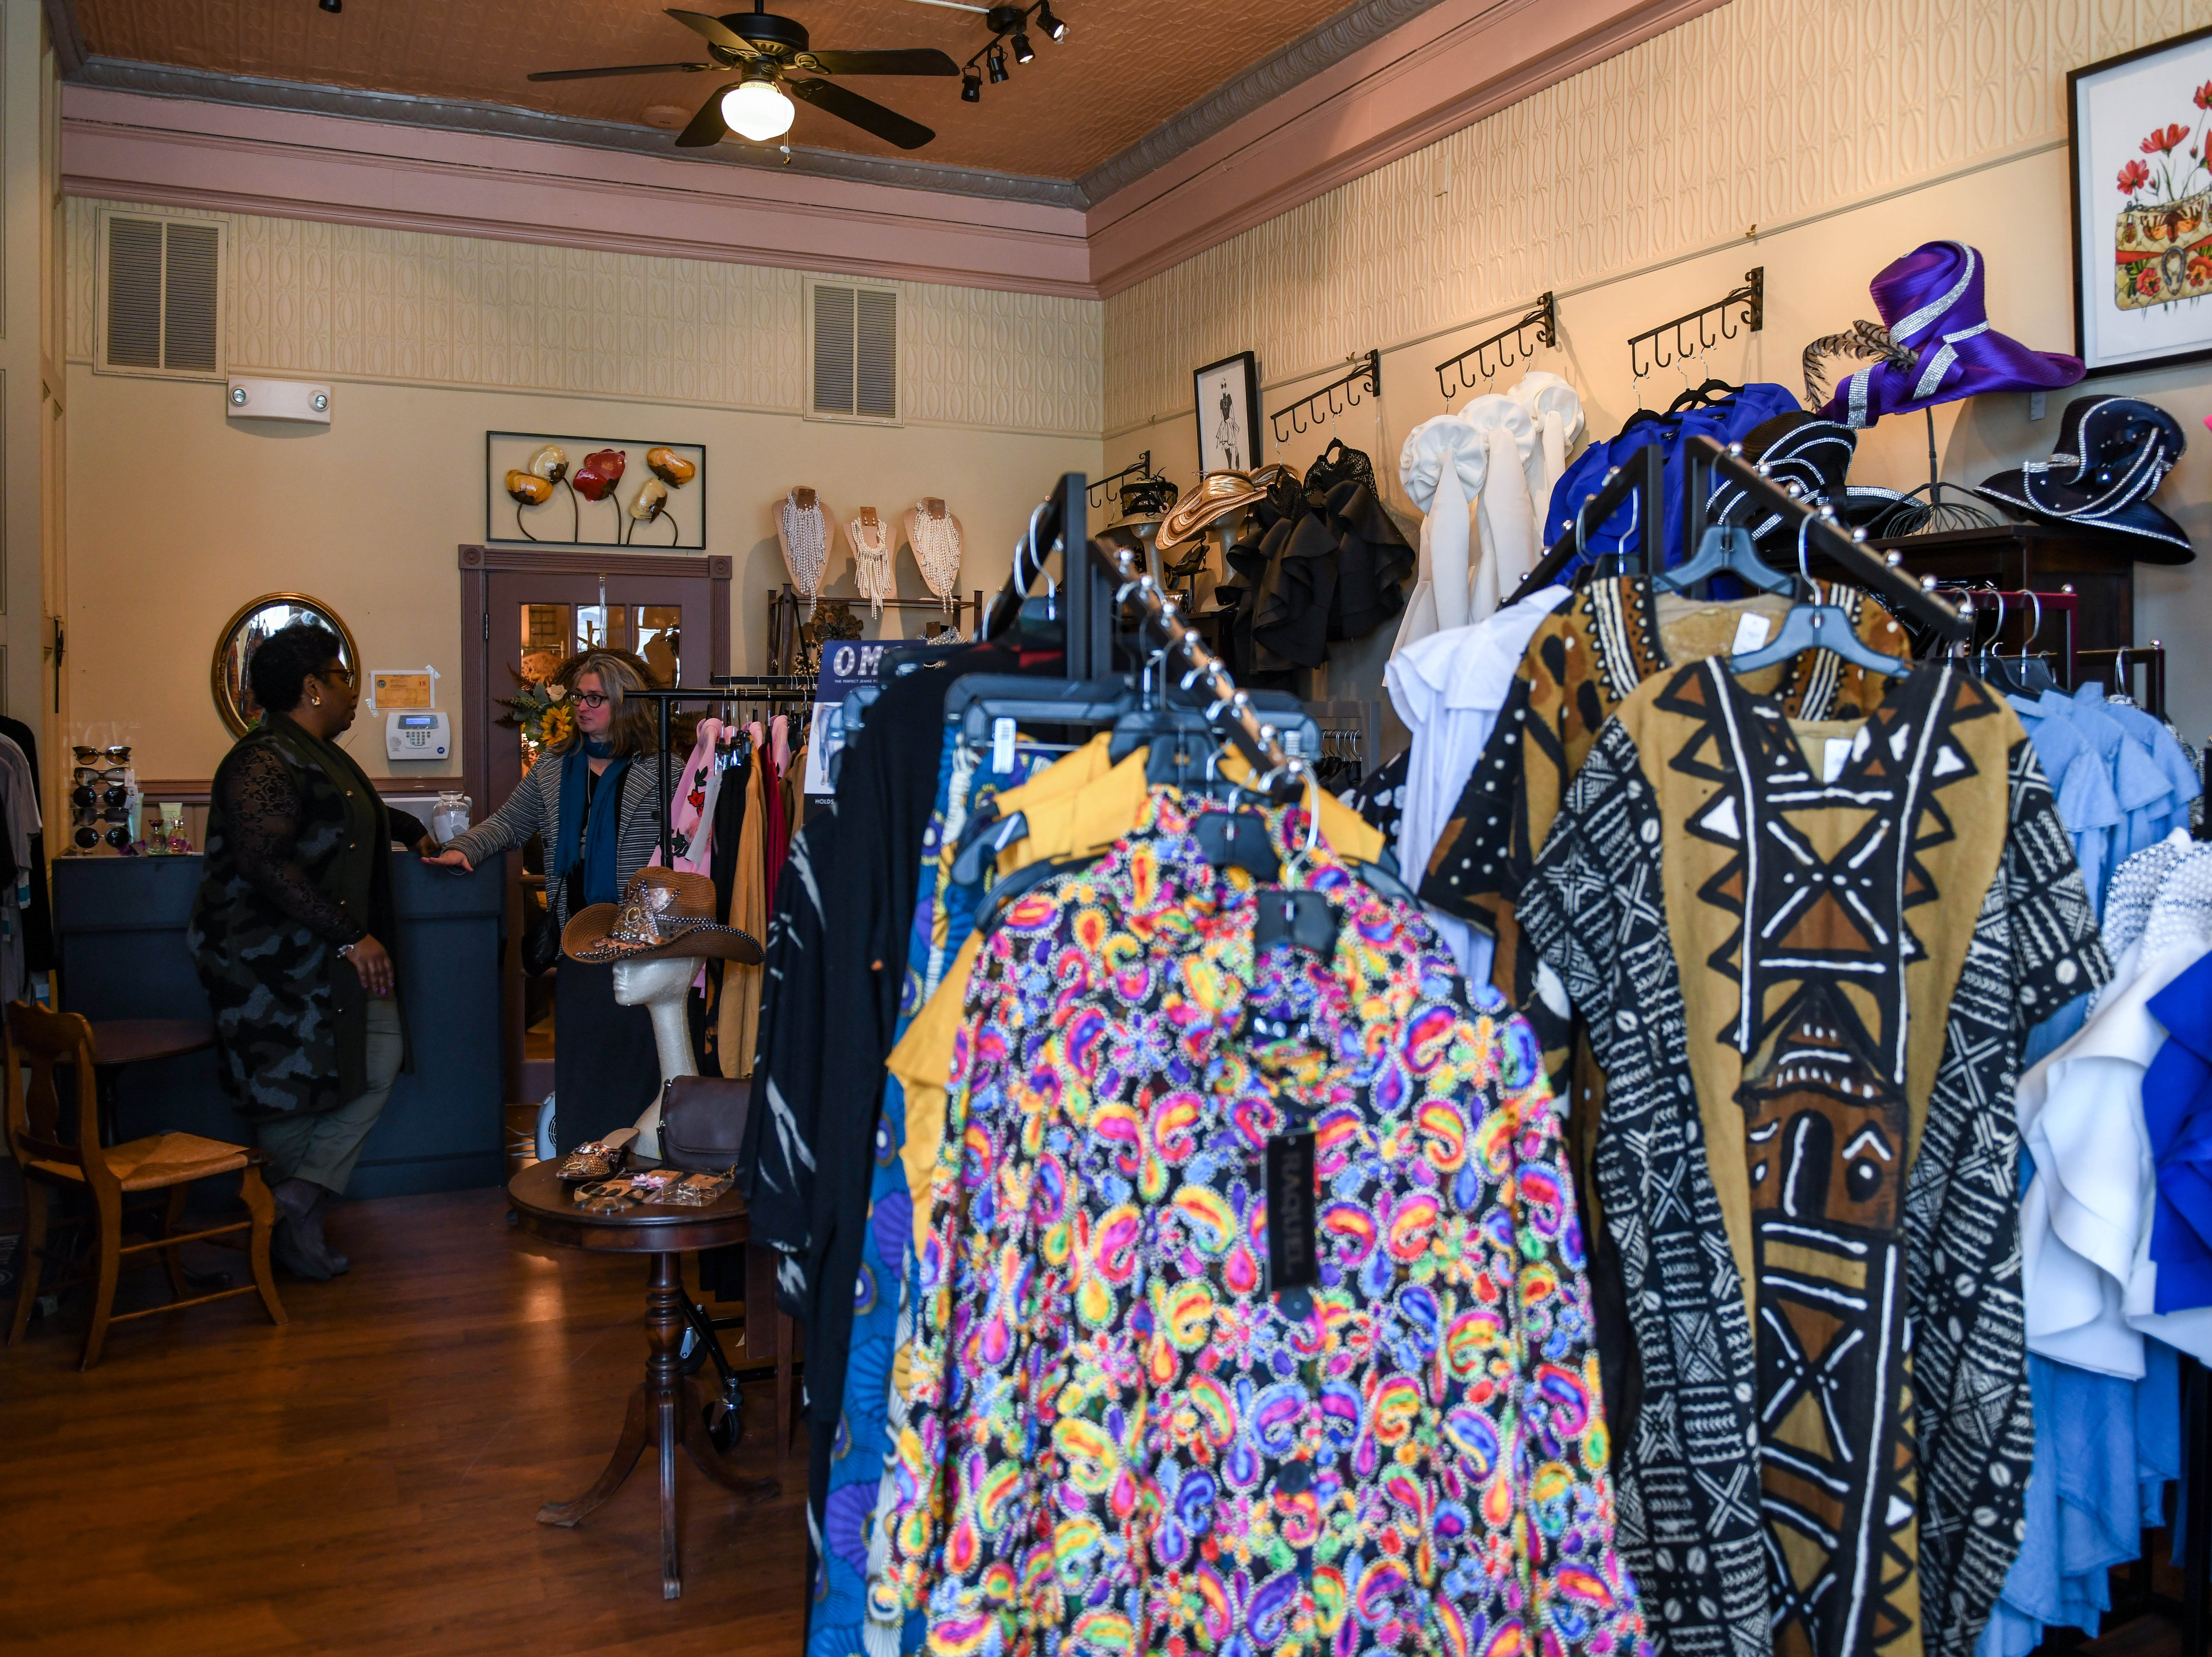 Clothes hang in the new O Grace & Glory boutique in downtown Princess Anne on Tuesday, Feb. 26, 2019.